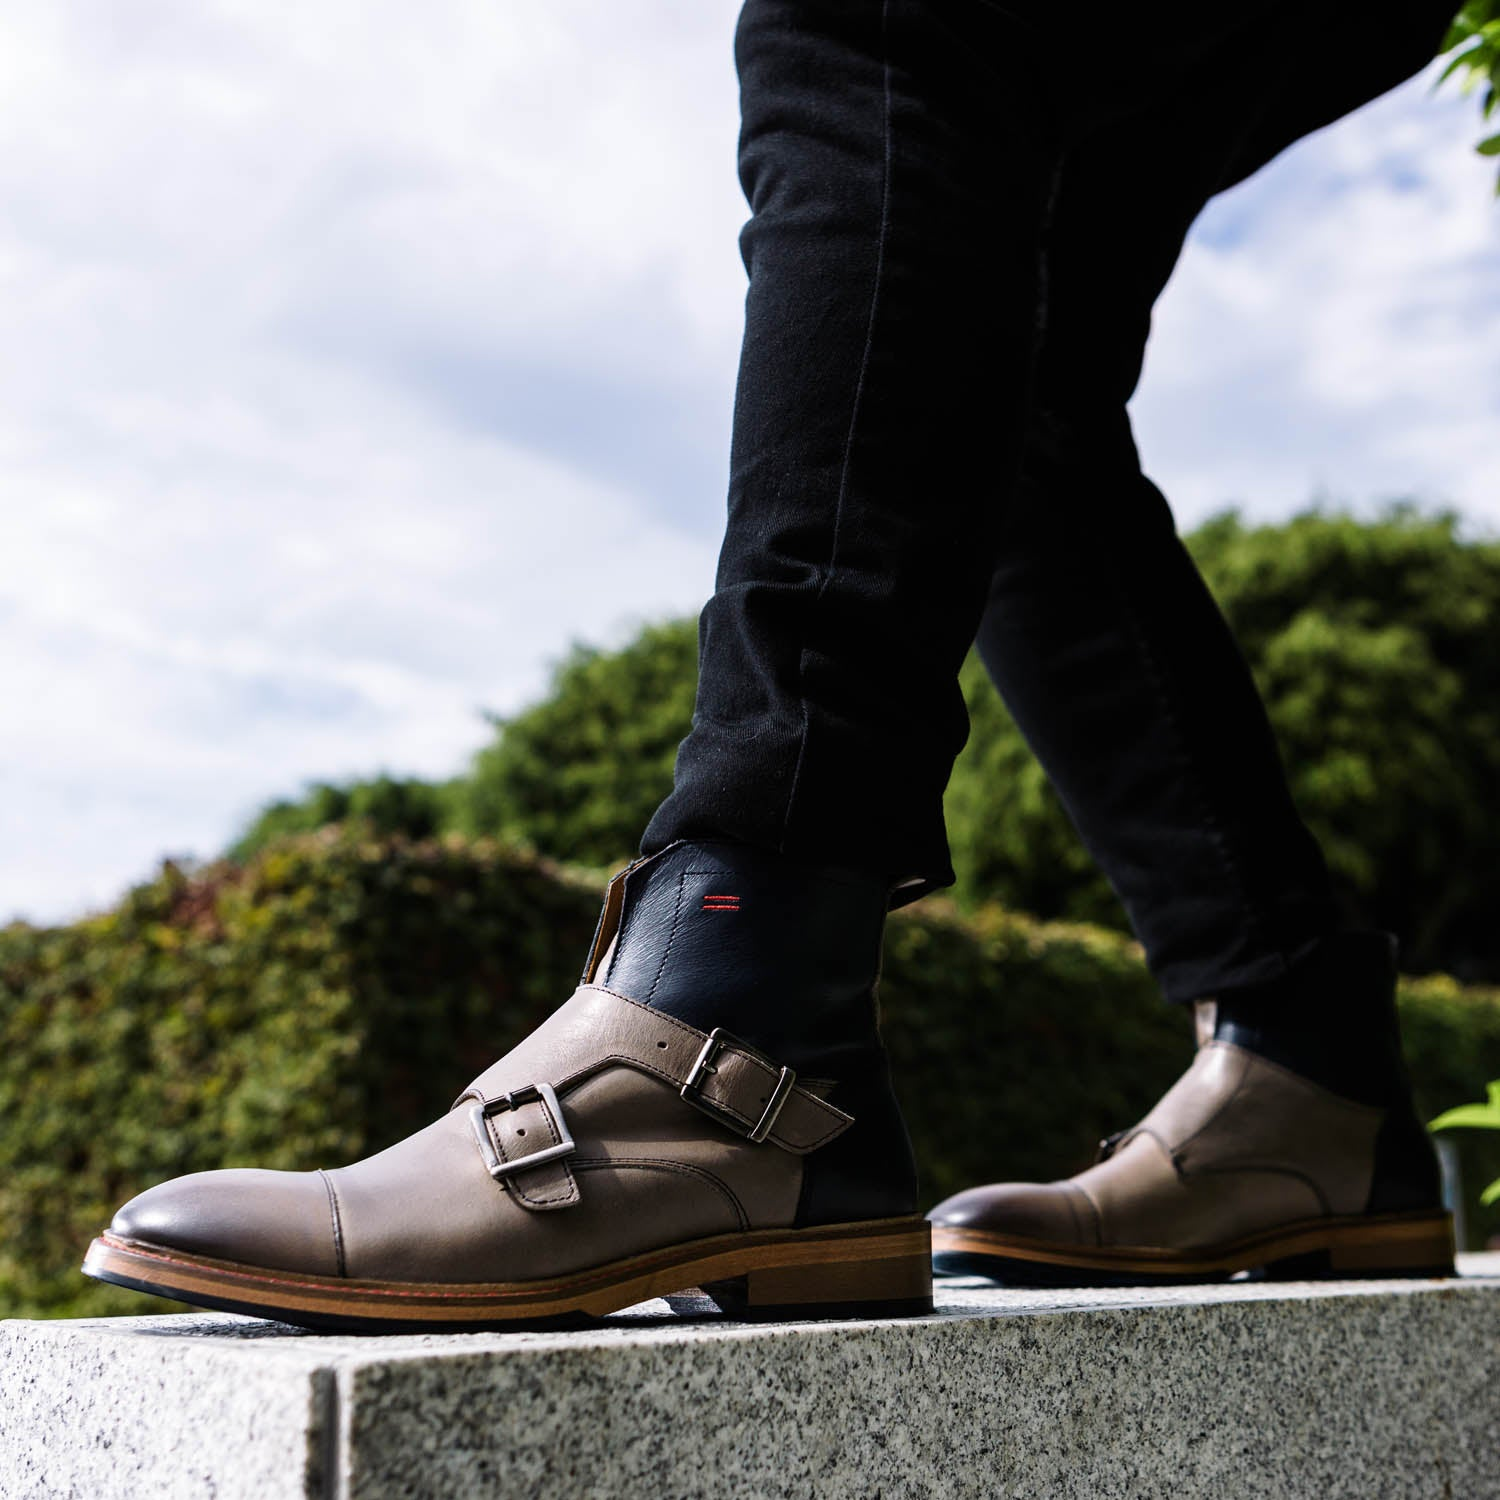 NiK Kacy Gender-Equal Gender-Neutral Luxury Monkstrap Boots in Reverse Navy Blue and Grey Genuine Leather. Walk Your Way!